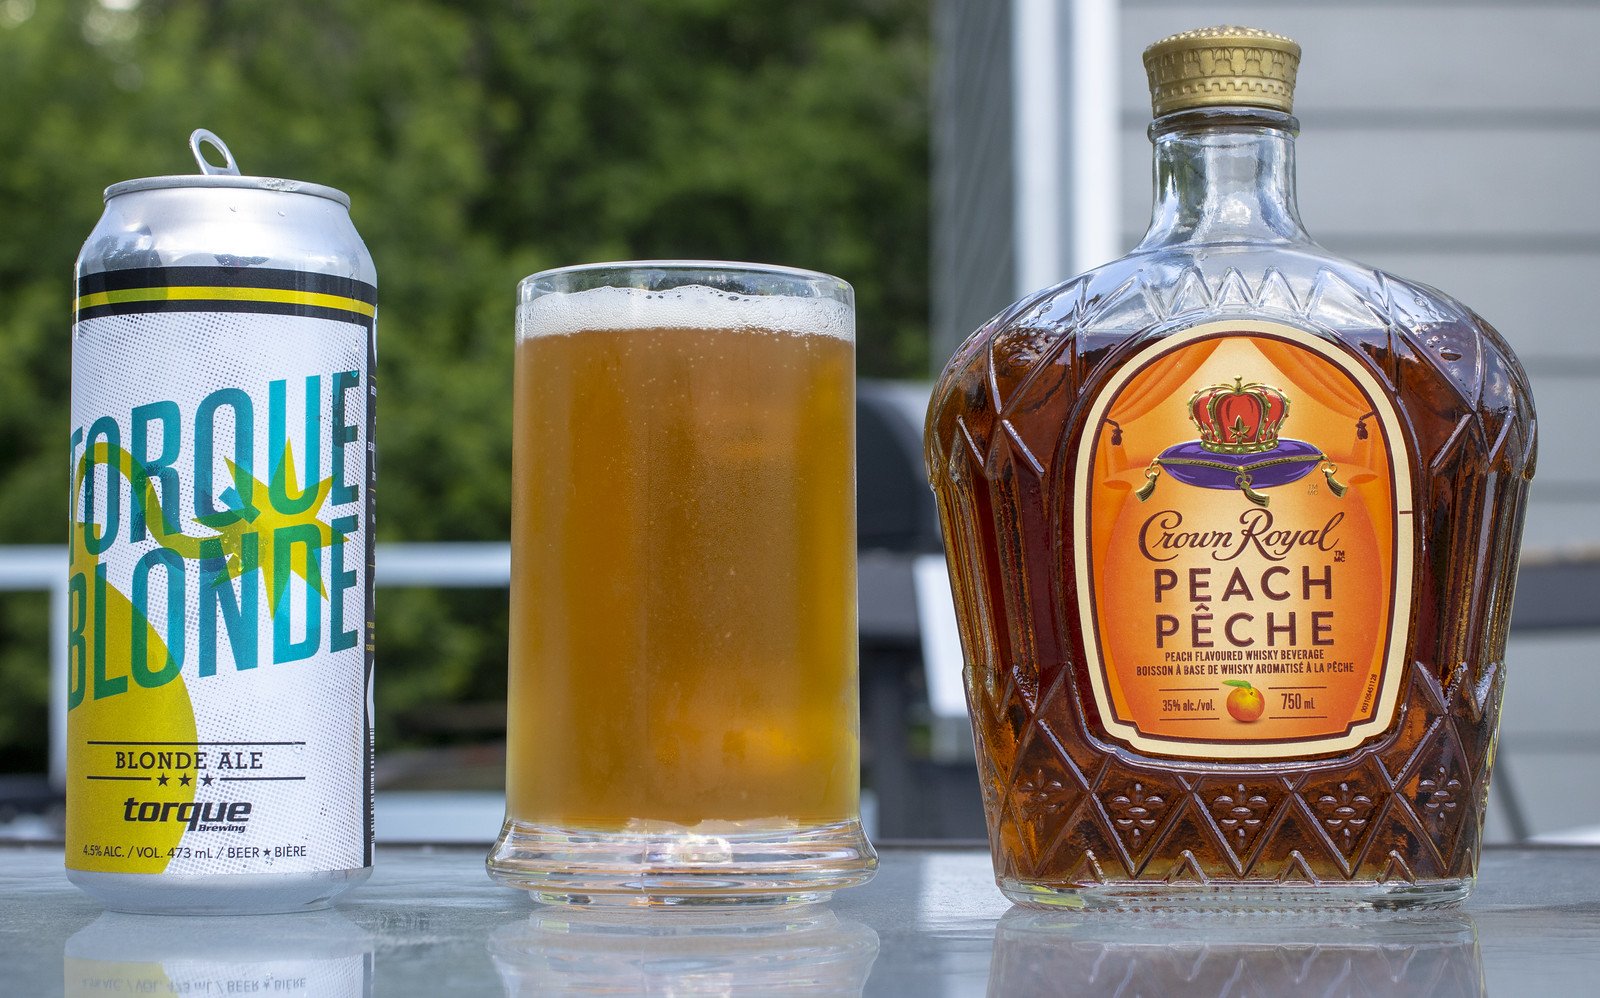 The Gimli Rydler - Crown Royal Peach Whisky and Beer